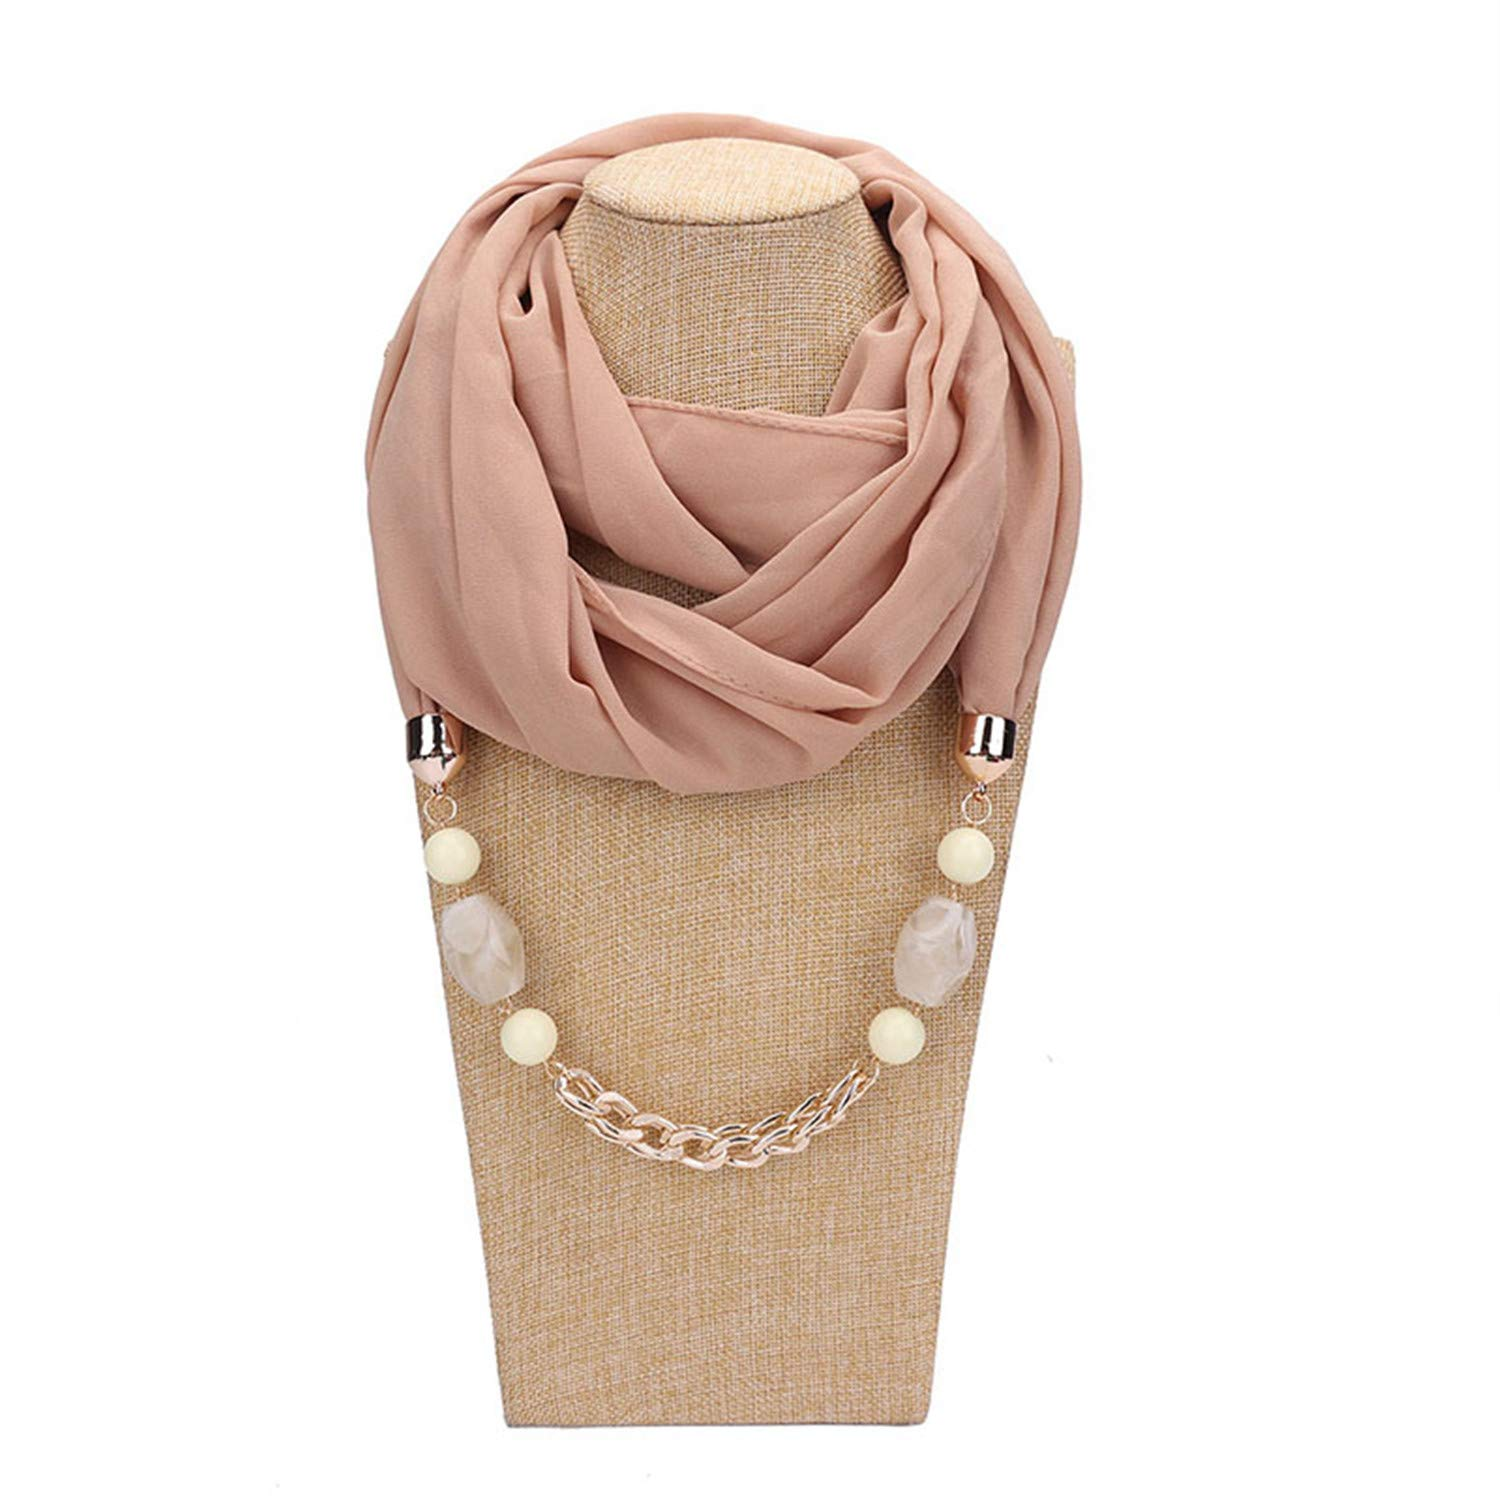 Scarf For Women Accessories Hijab Femme Elegant Pendants Scarf EP Resin Alloy Pendant Scarf For Girl